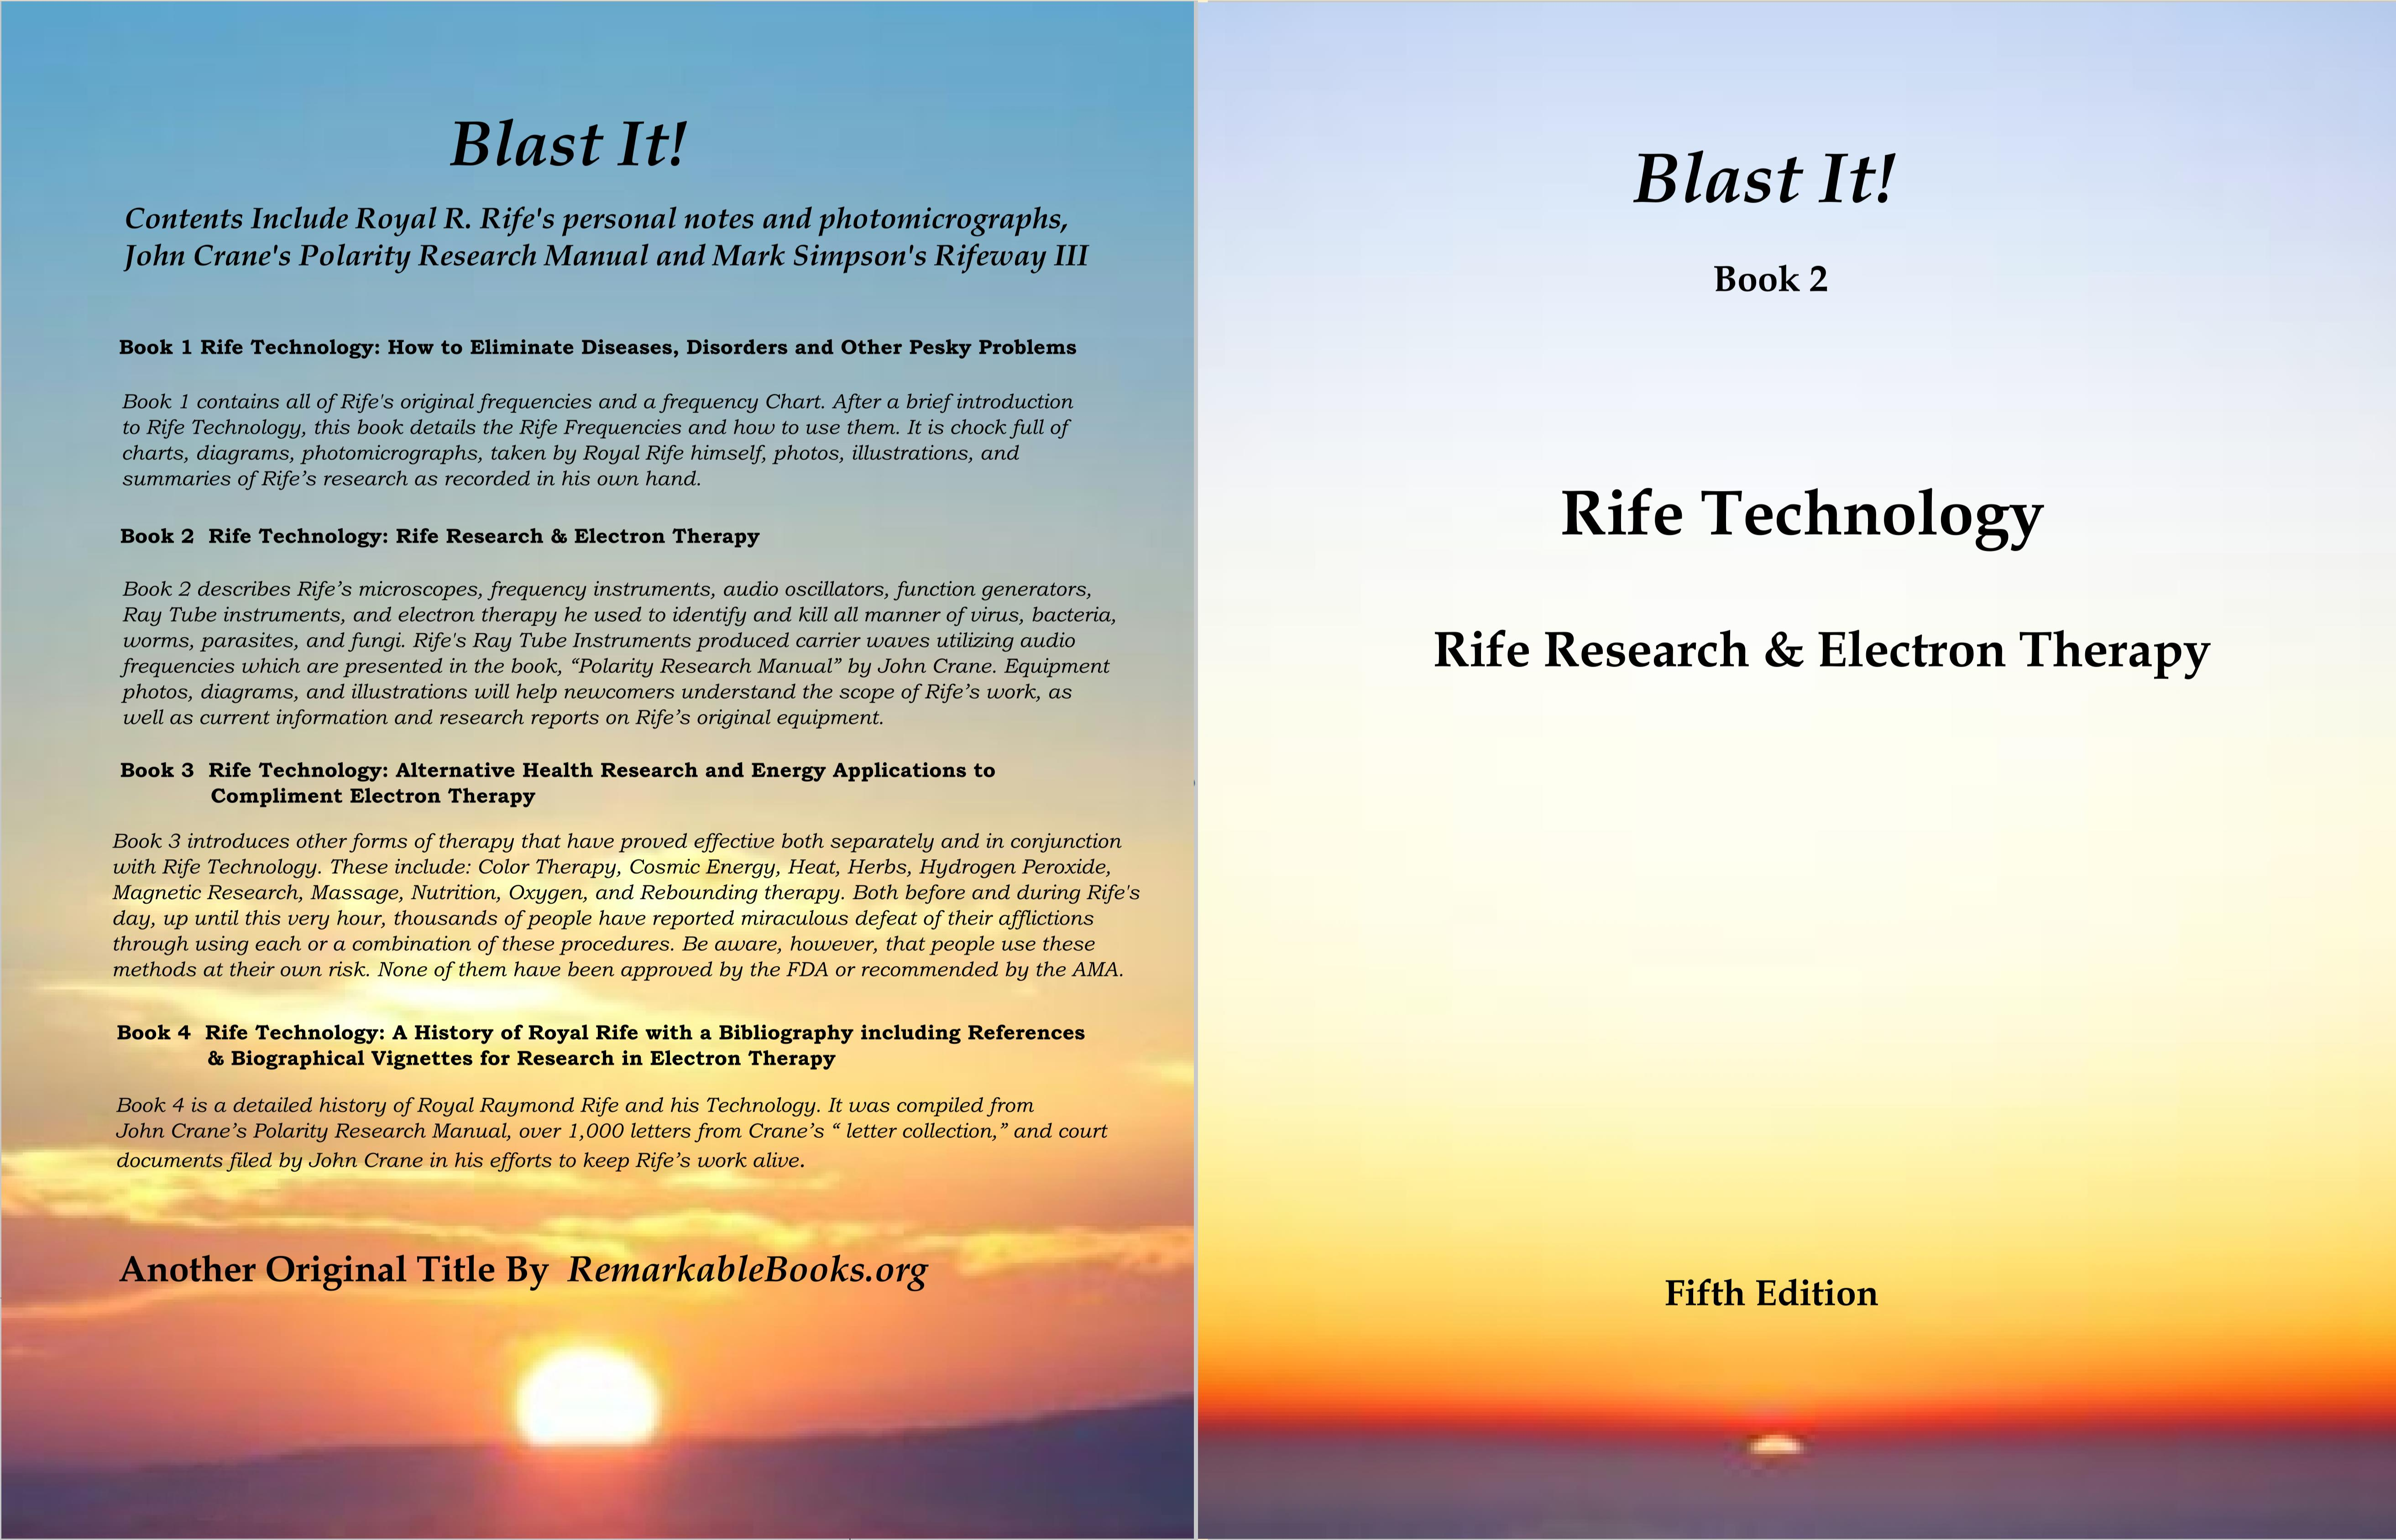 Blast It! Rife Technology - Book 2 cover image